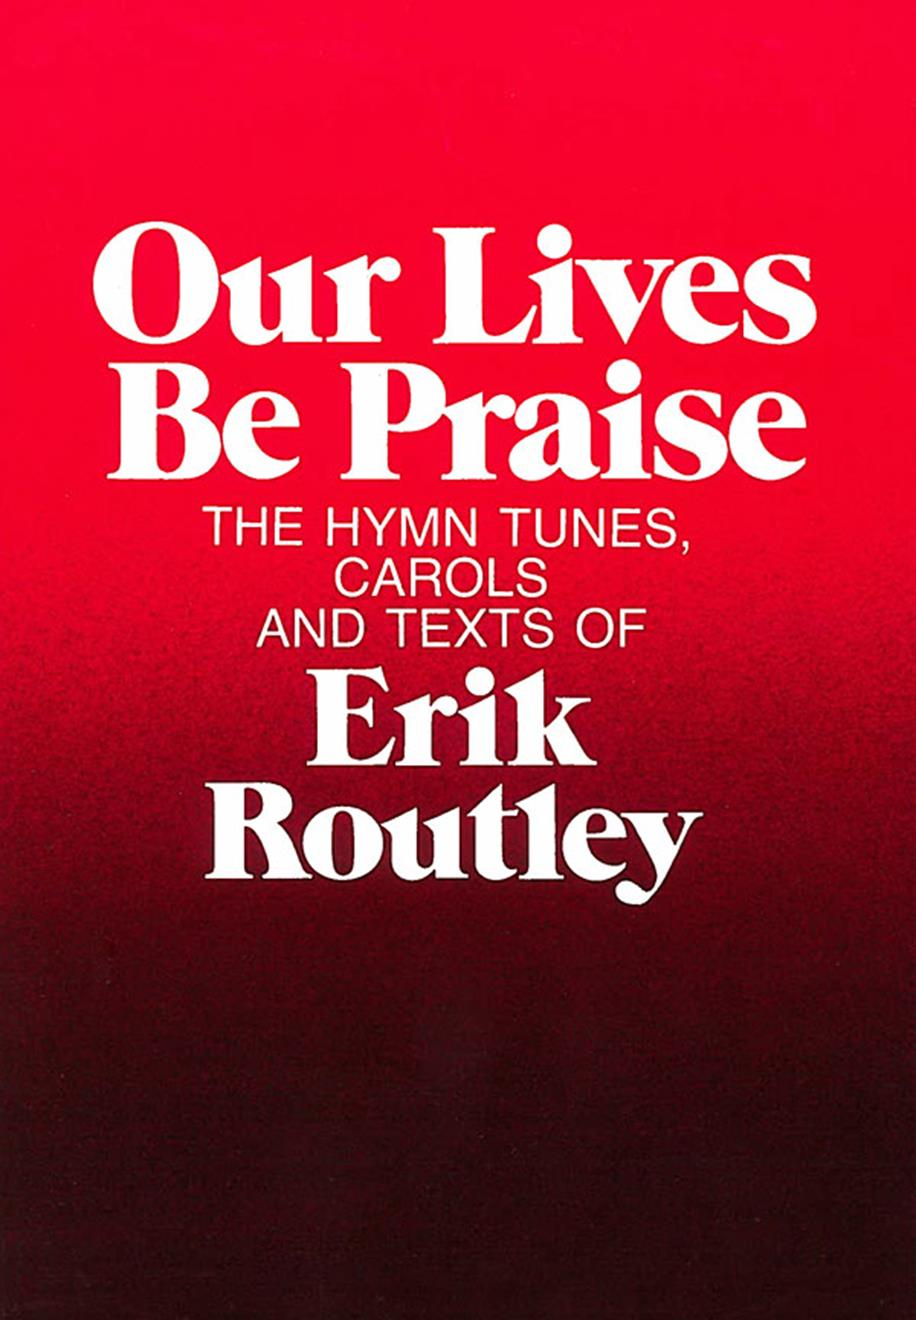 Our Lives Be Praise Cover Image